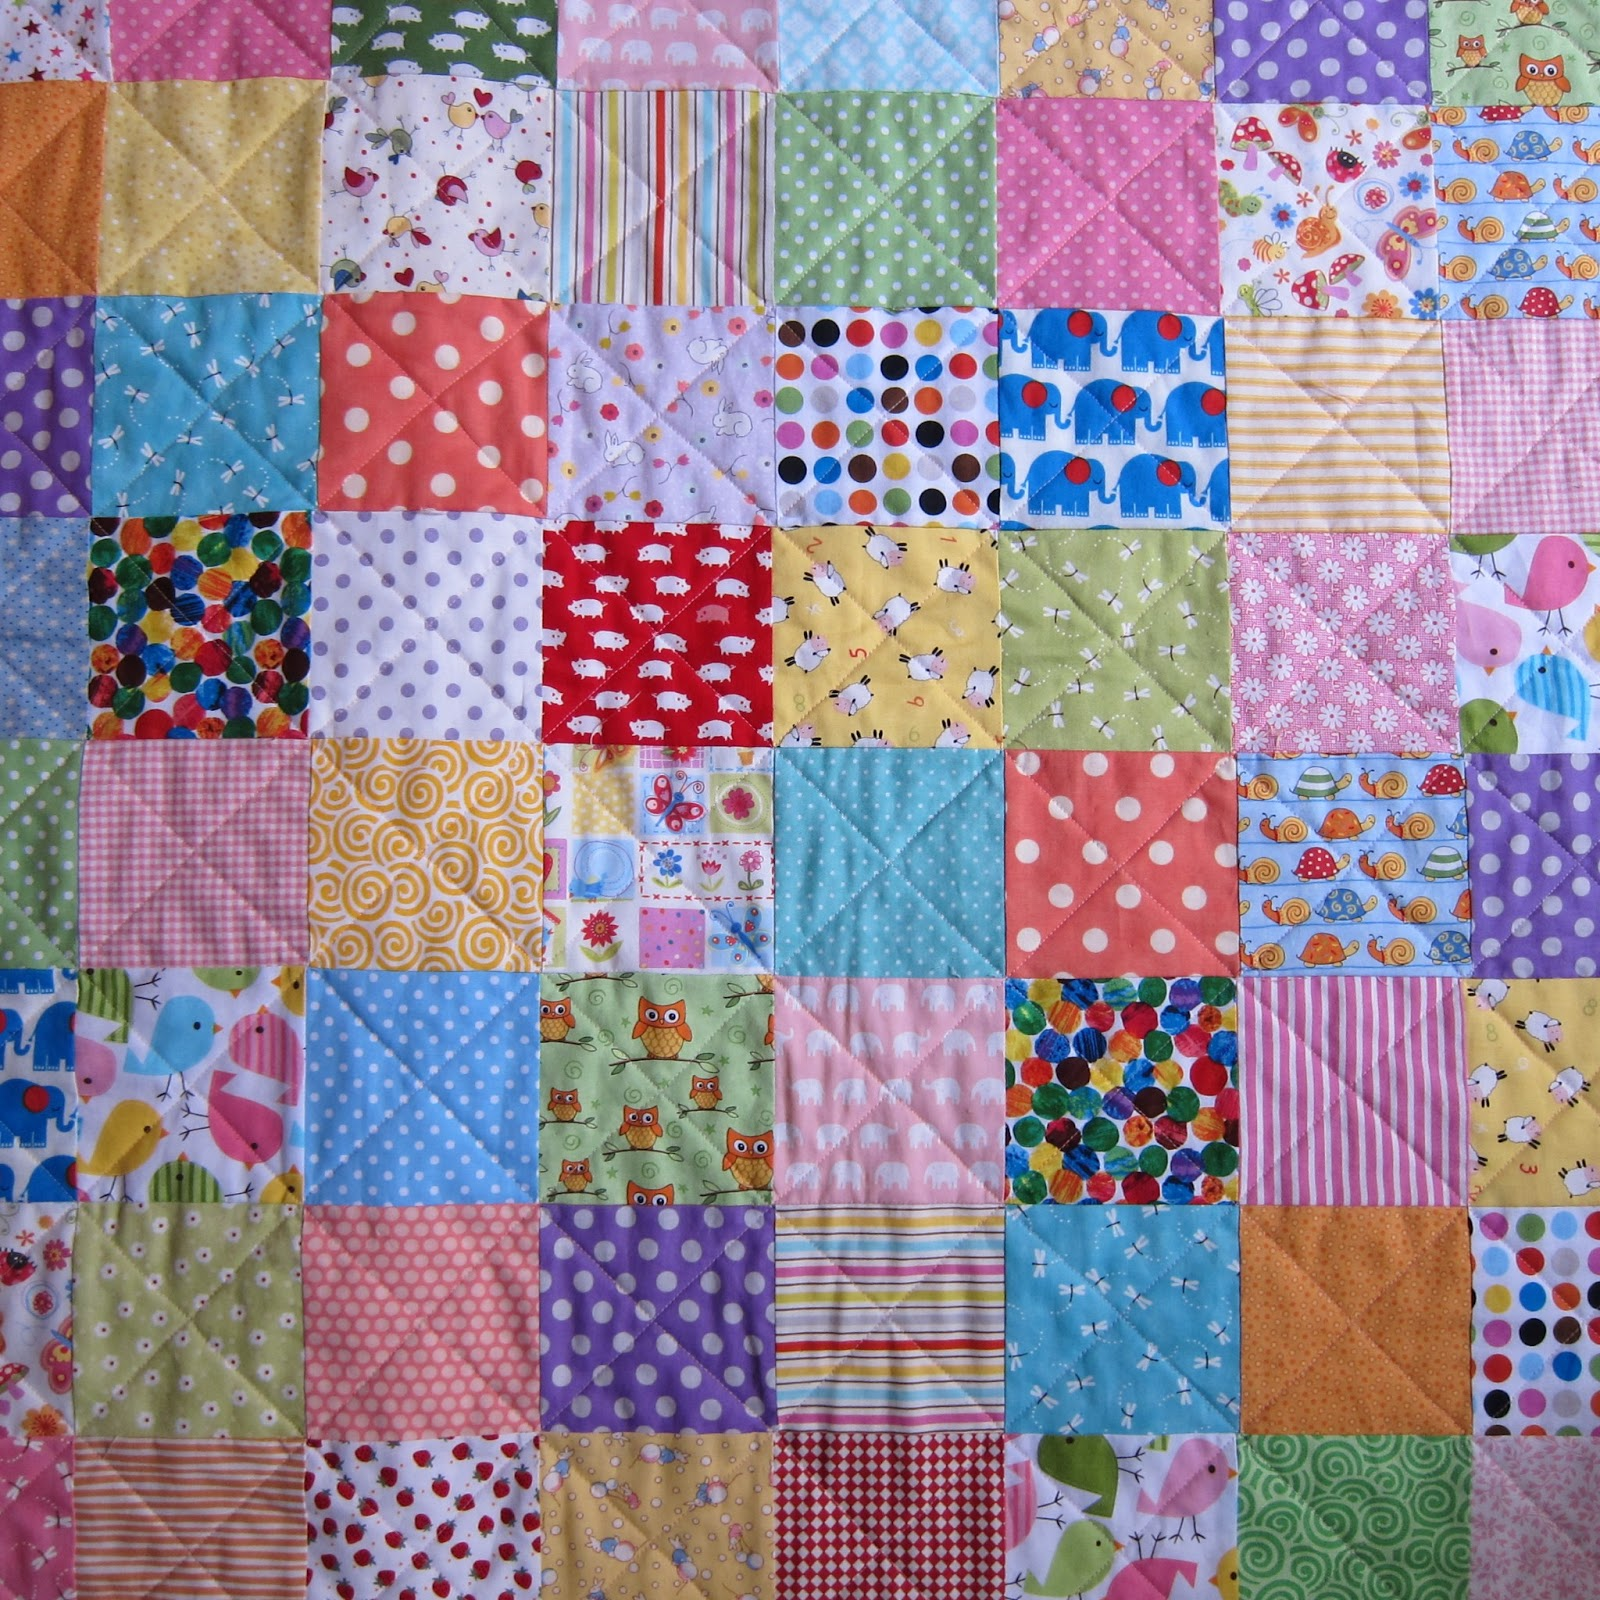 Photo Patchwork Bashley Quilters | Hampshire And Isle Of Wight Air Ambulance